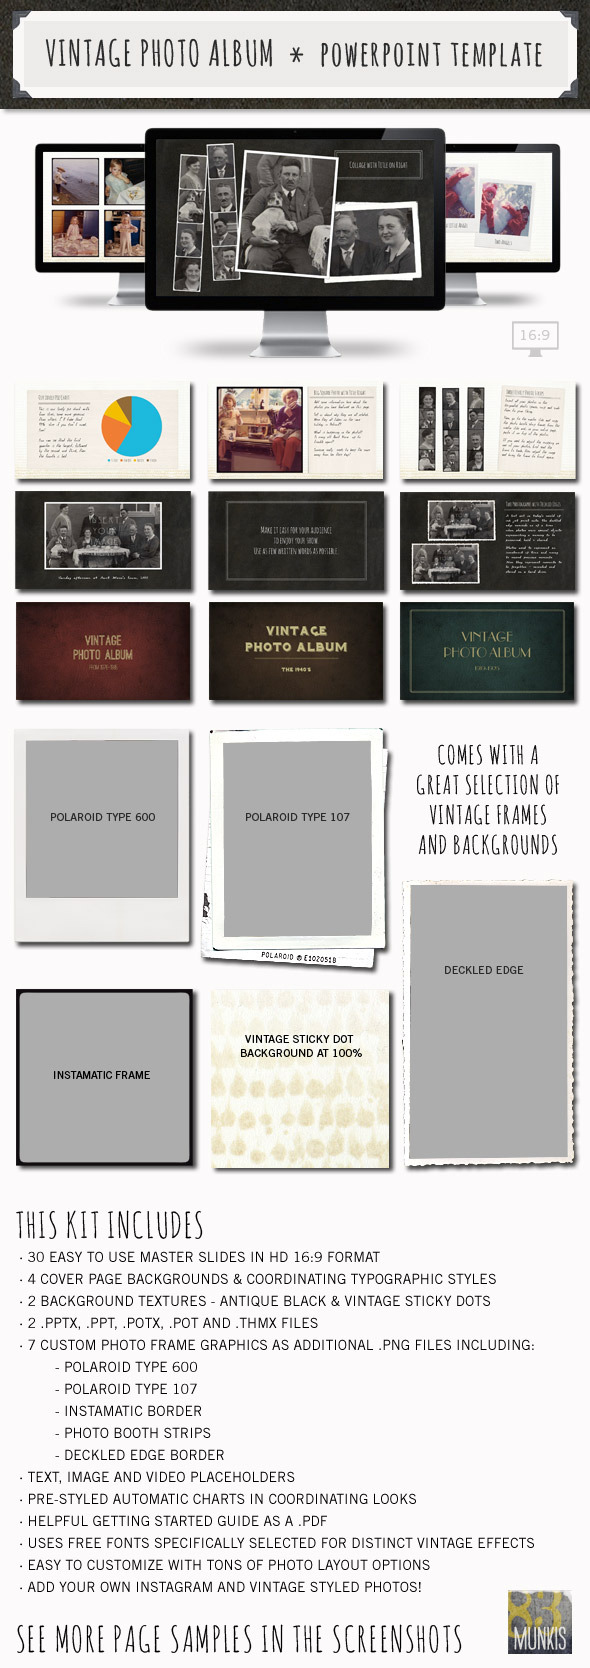 Vintage photo album powerpoint template by 83munkis graphicriver vintage photo album powerpoint template powerpoint templates presentation templates toneelgroepblik Images